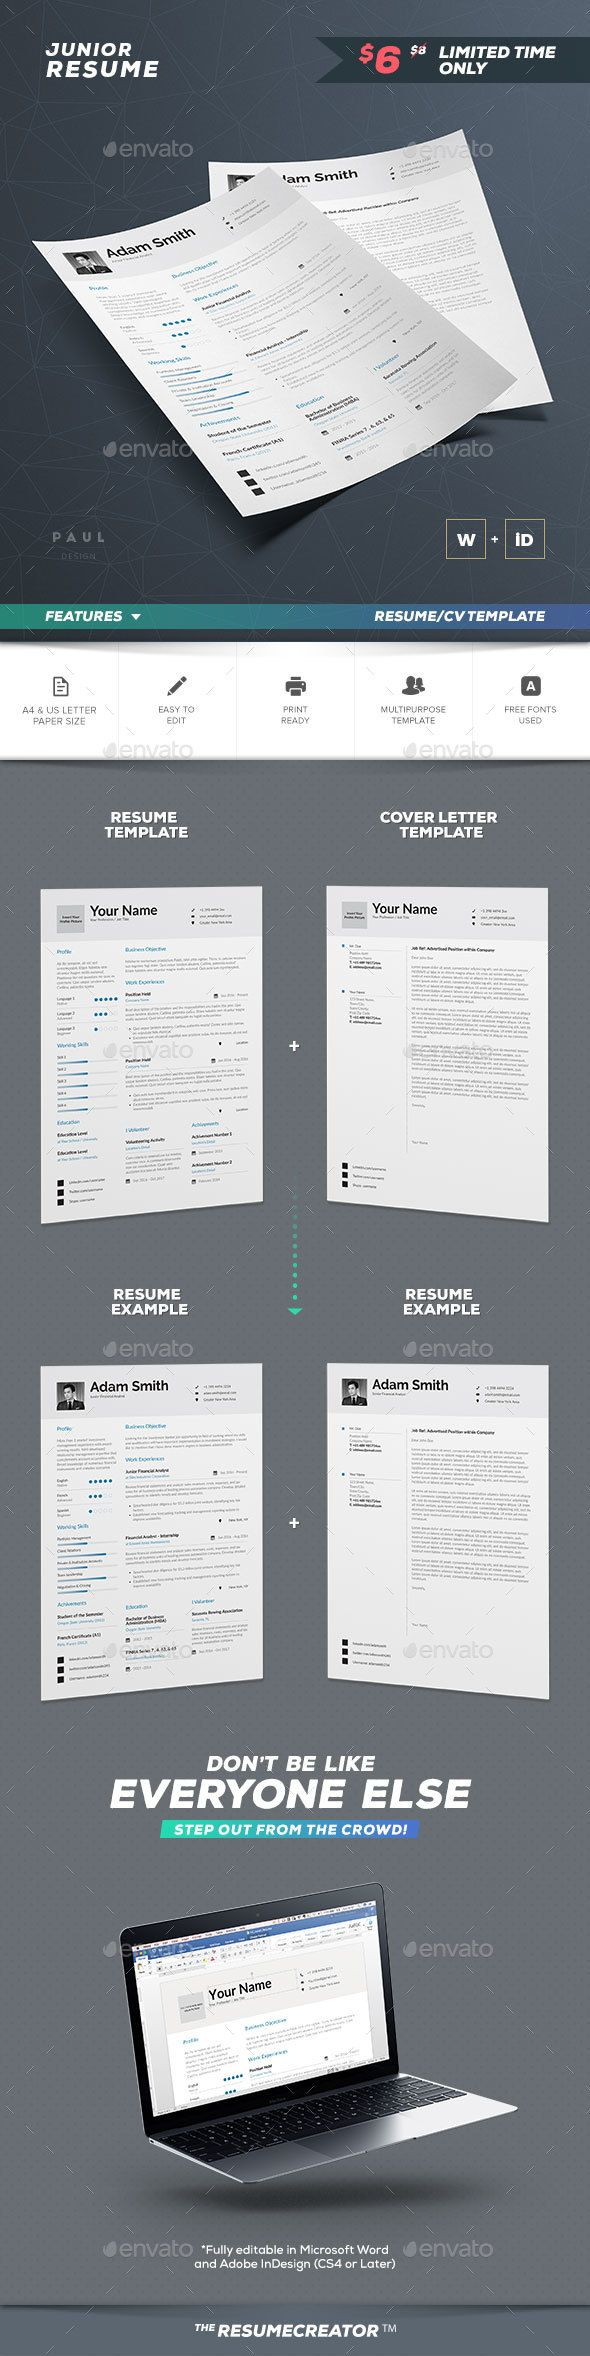 Resume / Cv Template - Word And Indesign